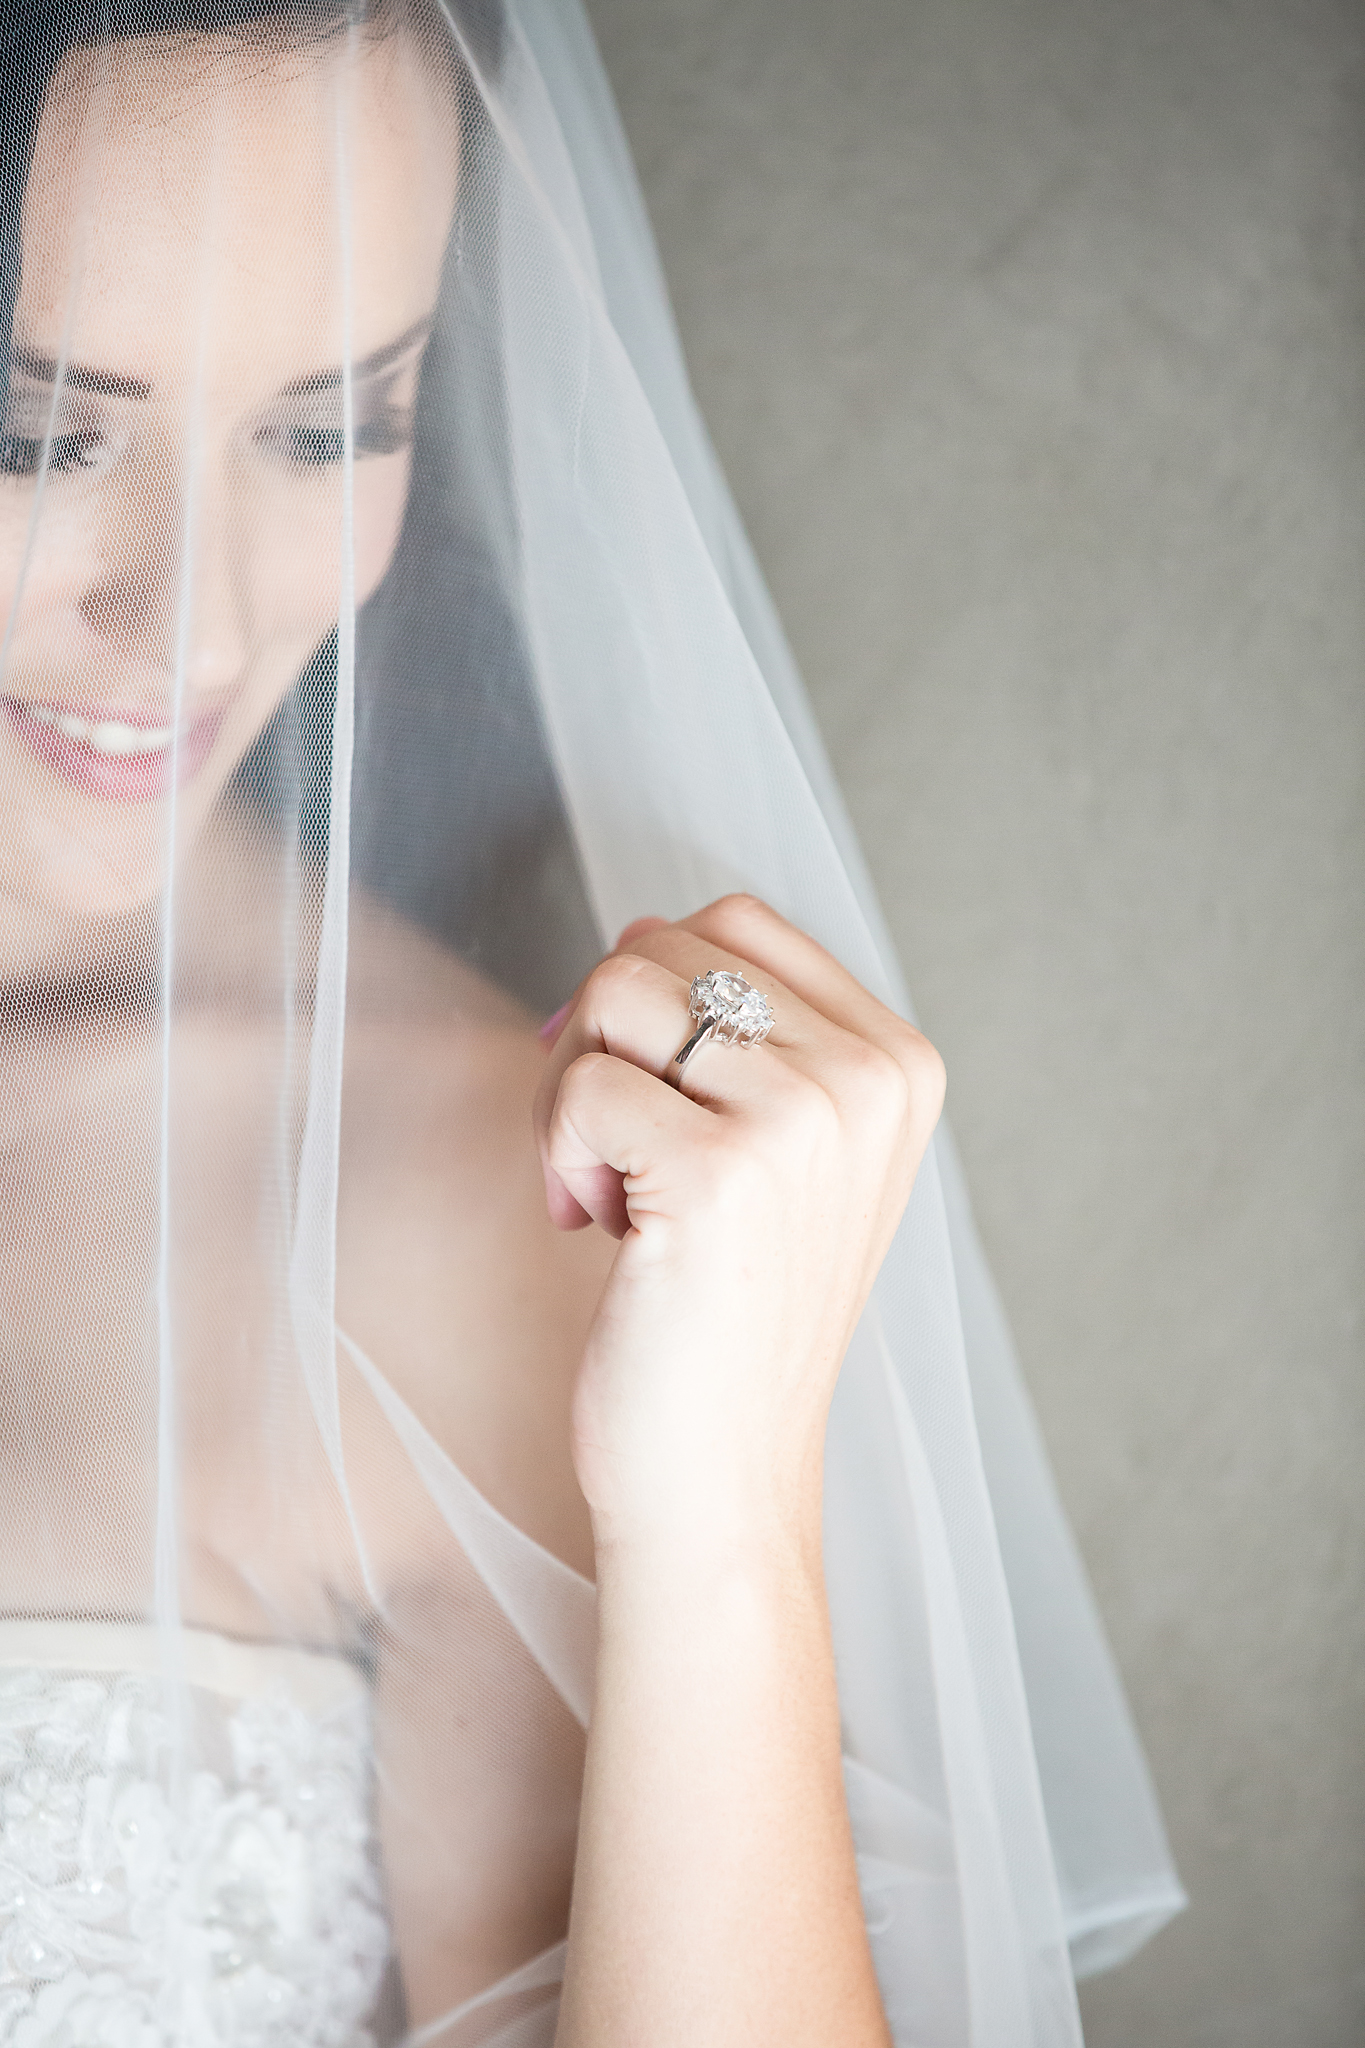 Wedding photographer Pretoria